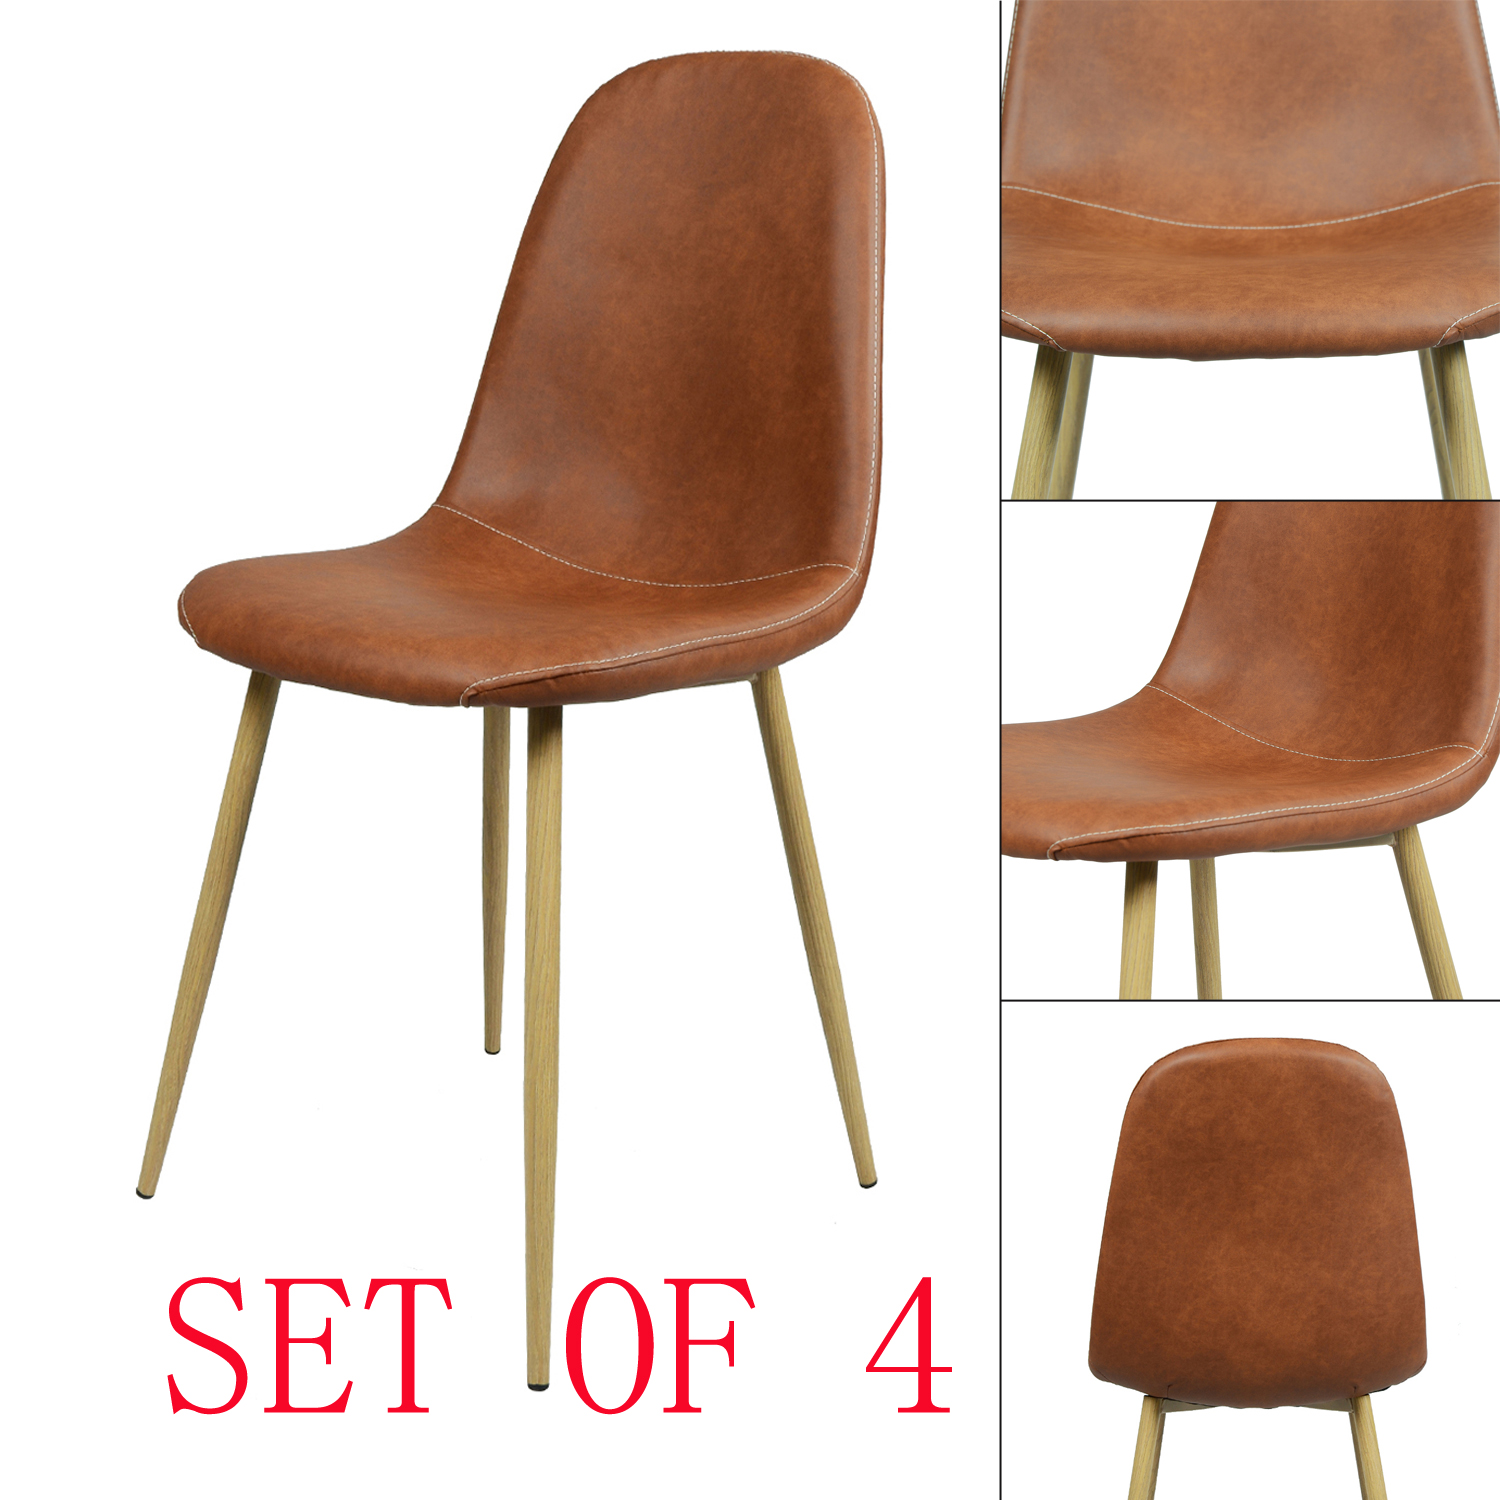 Set of 4 PU Retro Industrial Design Eames Style Home Living Room